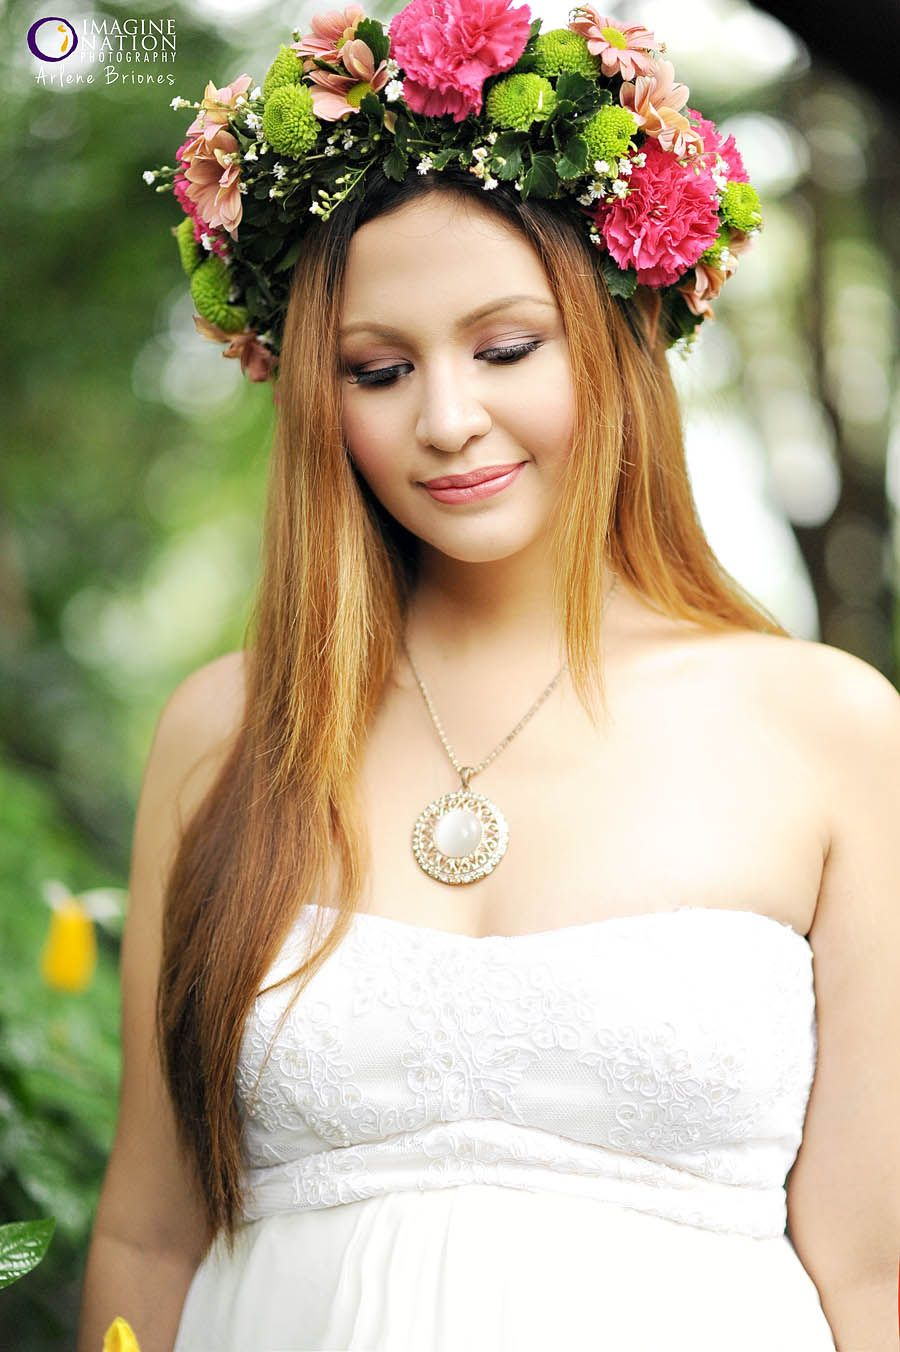 Gab In Her Pretty Flower Crown Boho Goddess Prenup Arlenebriones